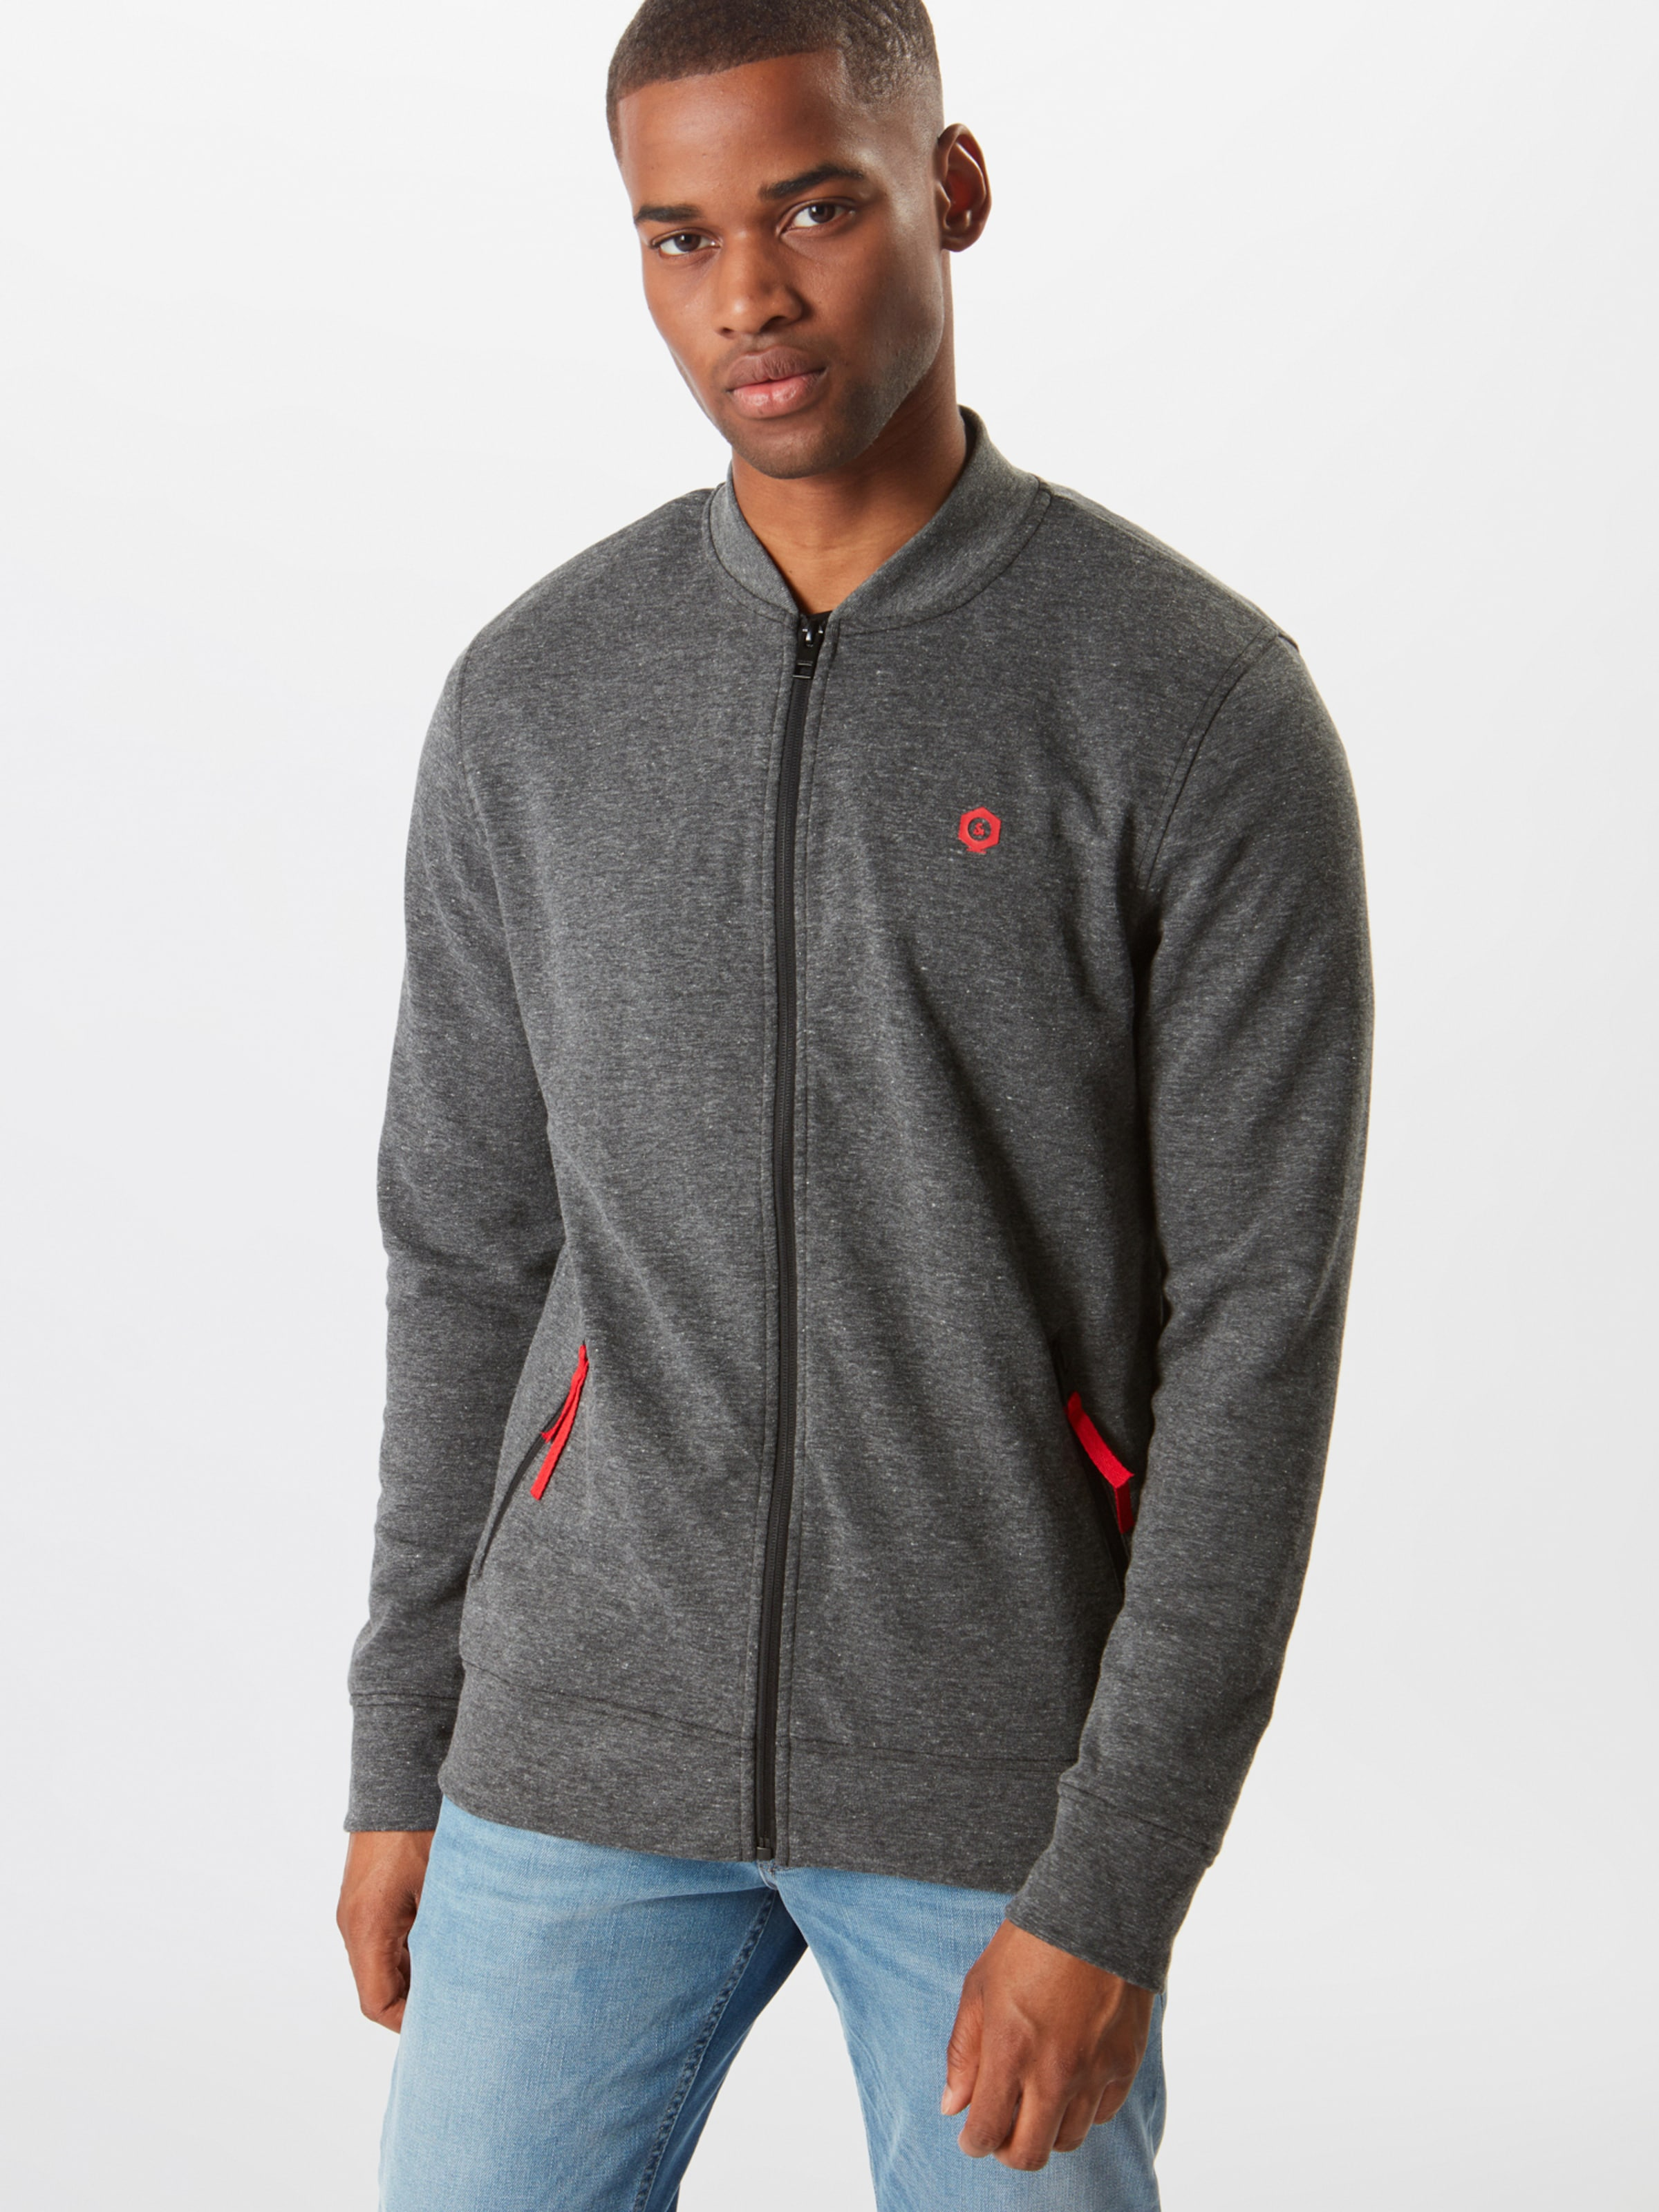 Dunkelgrau Pack' Mix Jones Zip In 'mart Jackamp; Sweatjacke Sweat CerBQdxoW